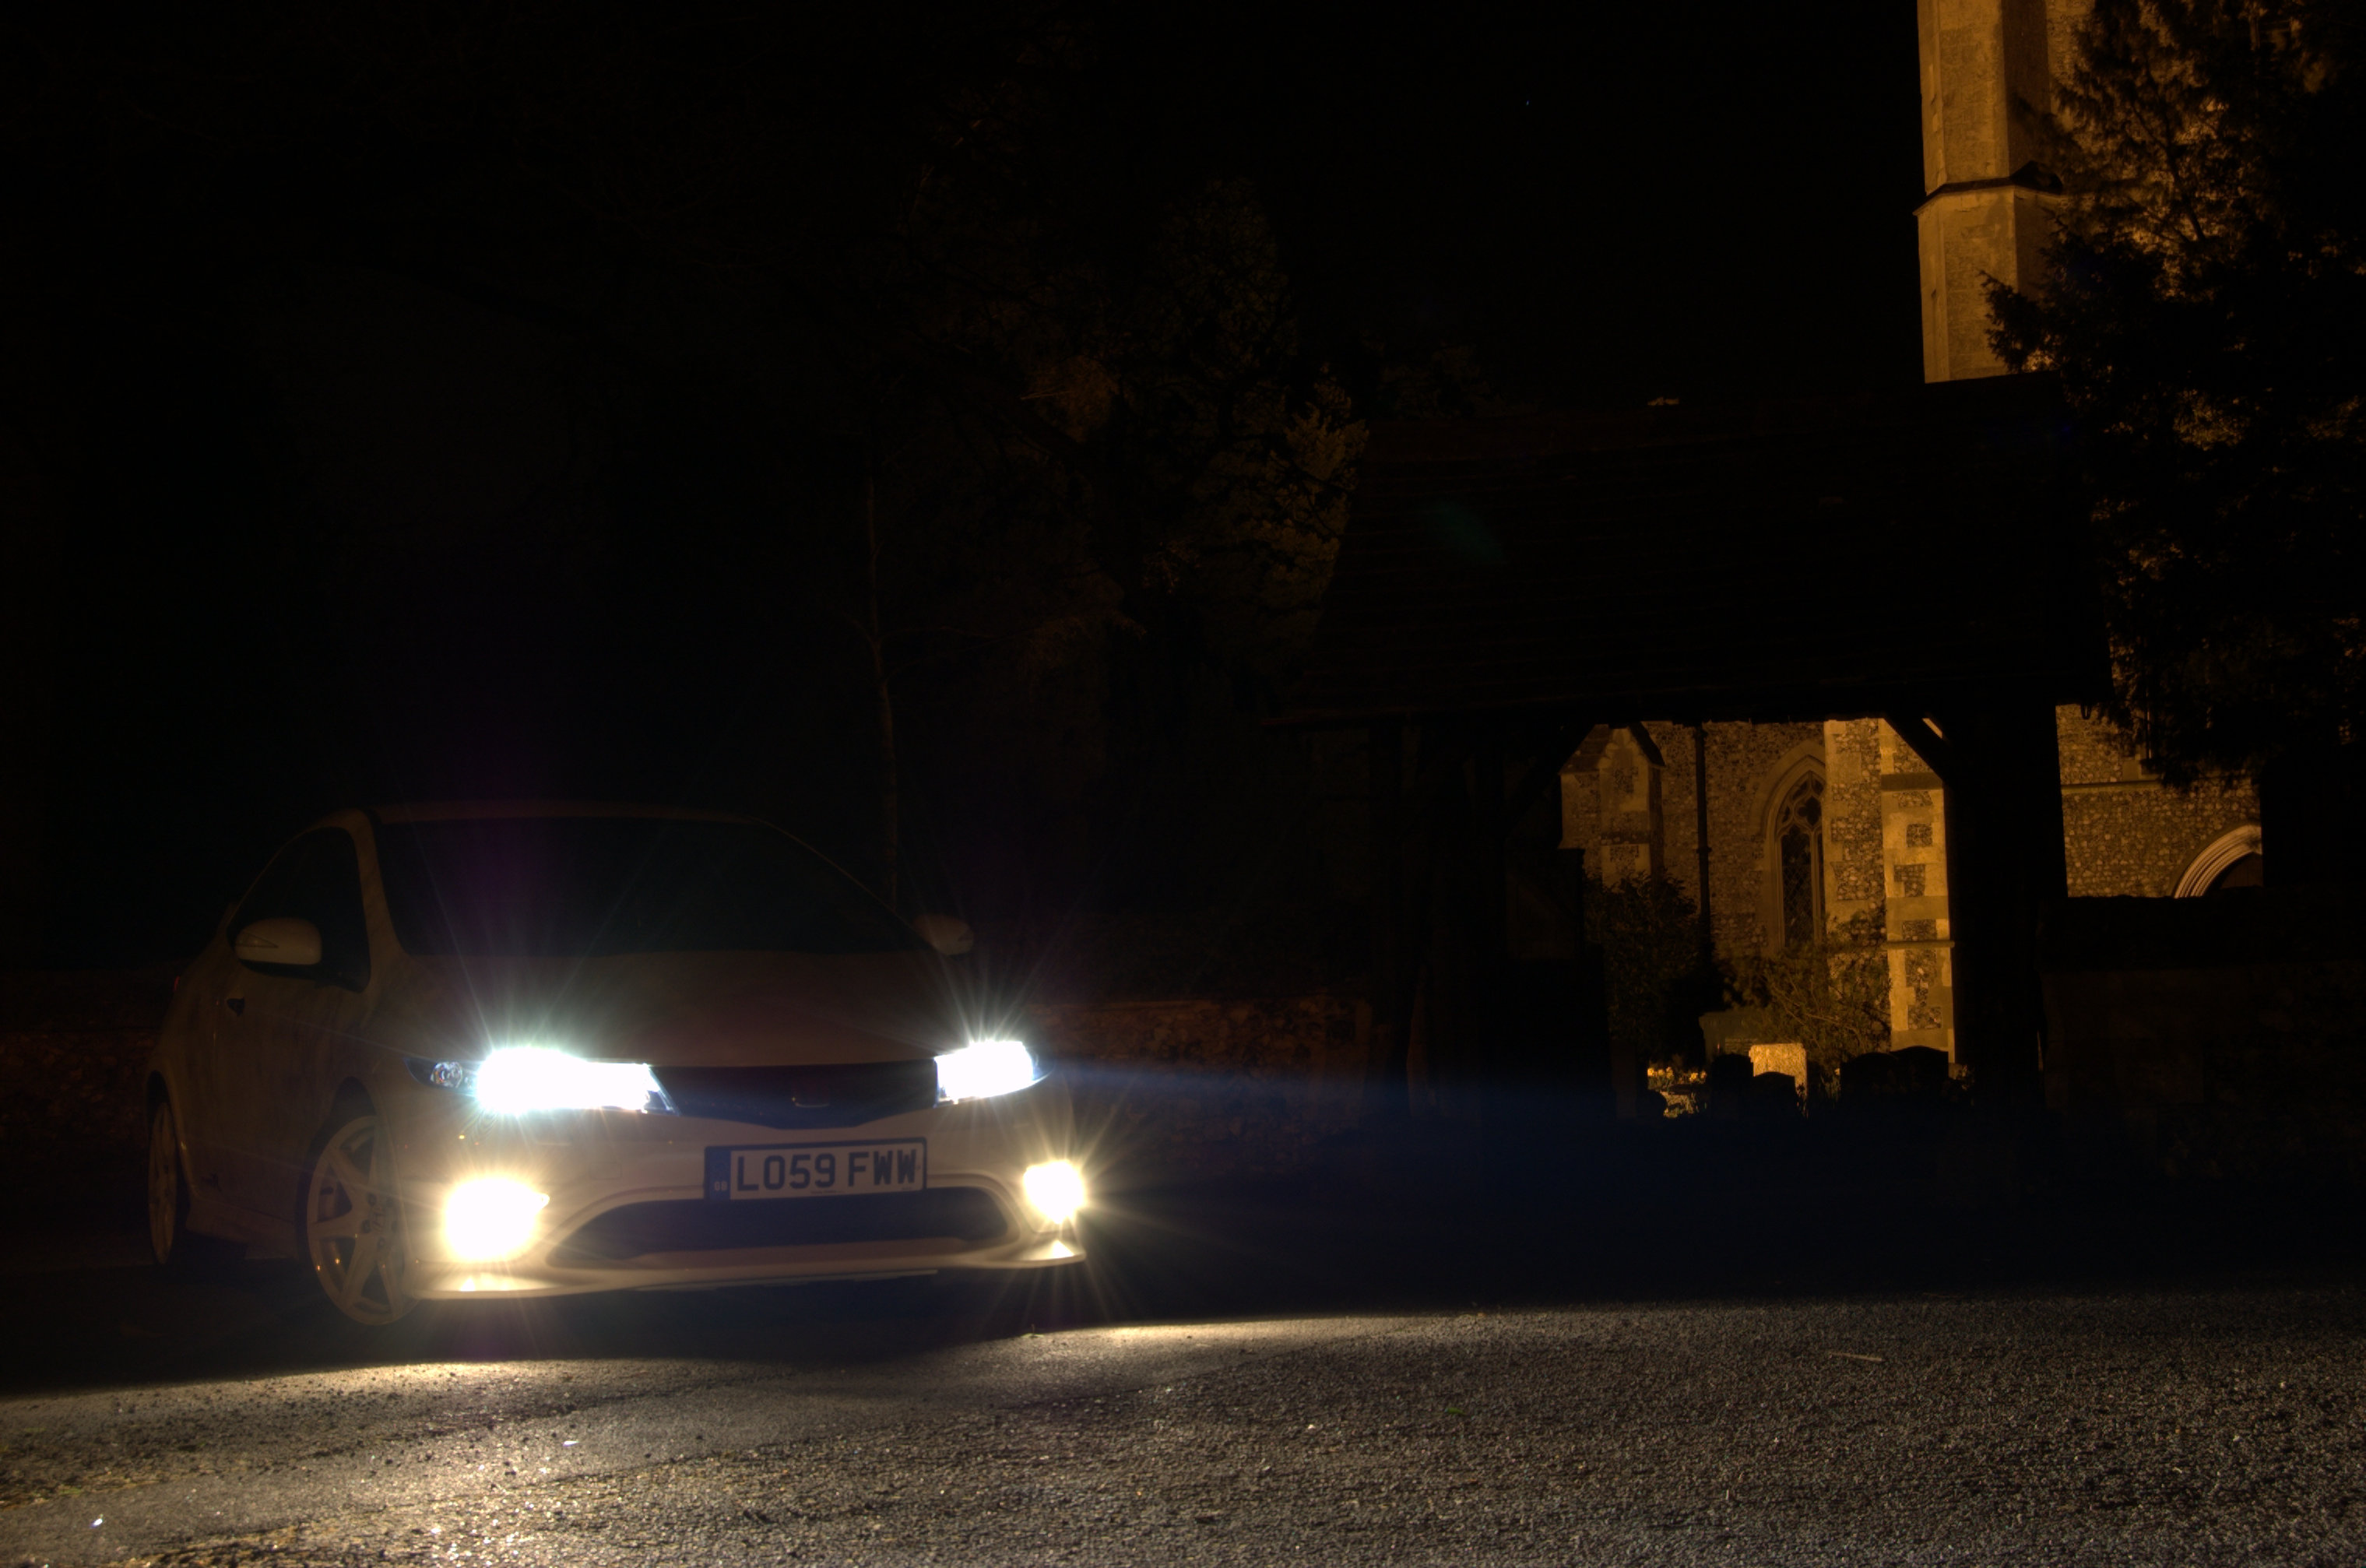 Honda Civic Night pic